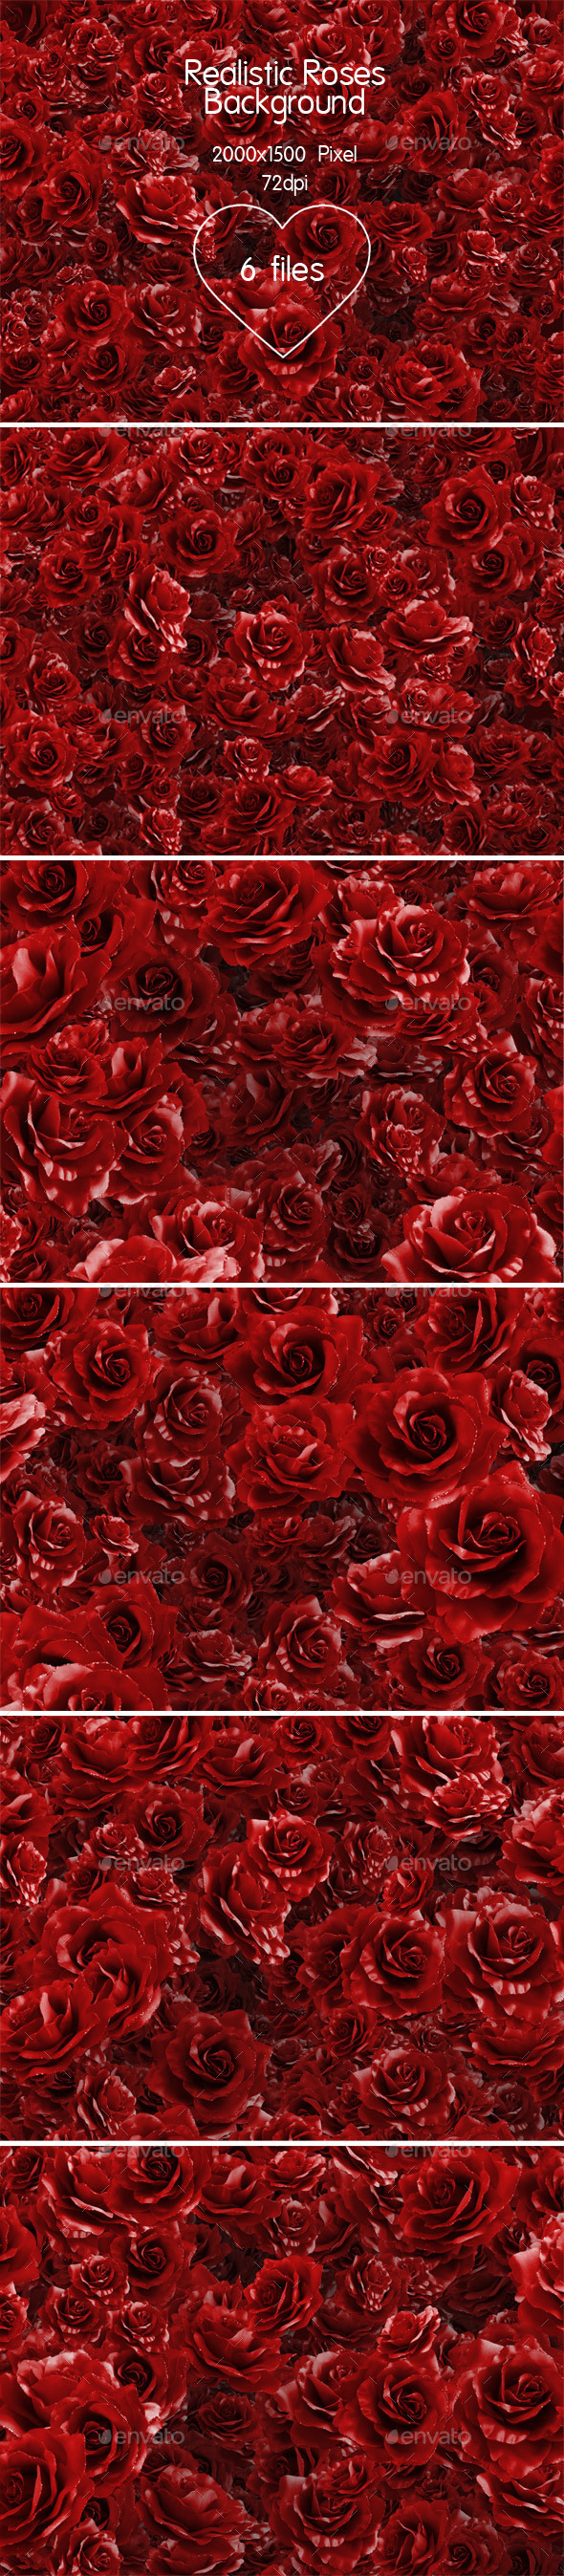 Realistic Roses Background - Backgrounds Graphics